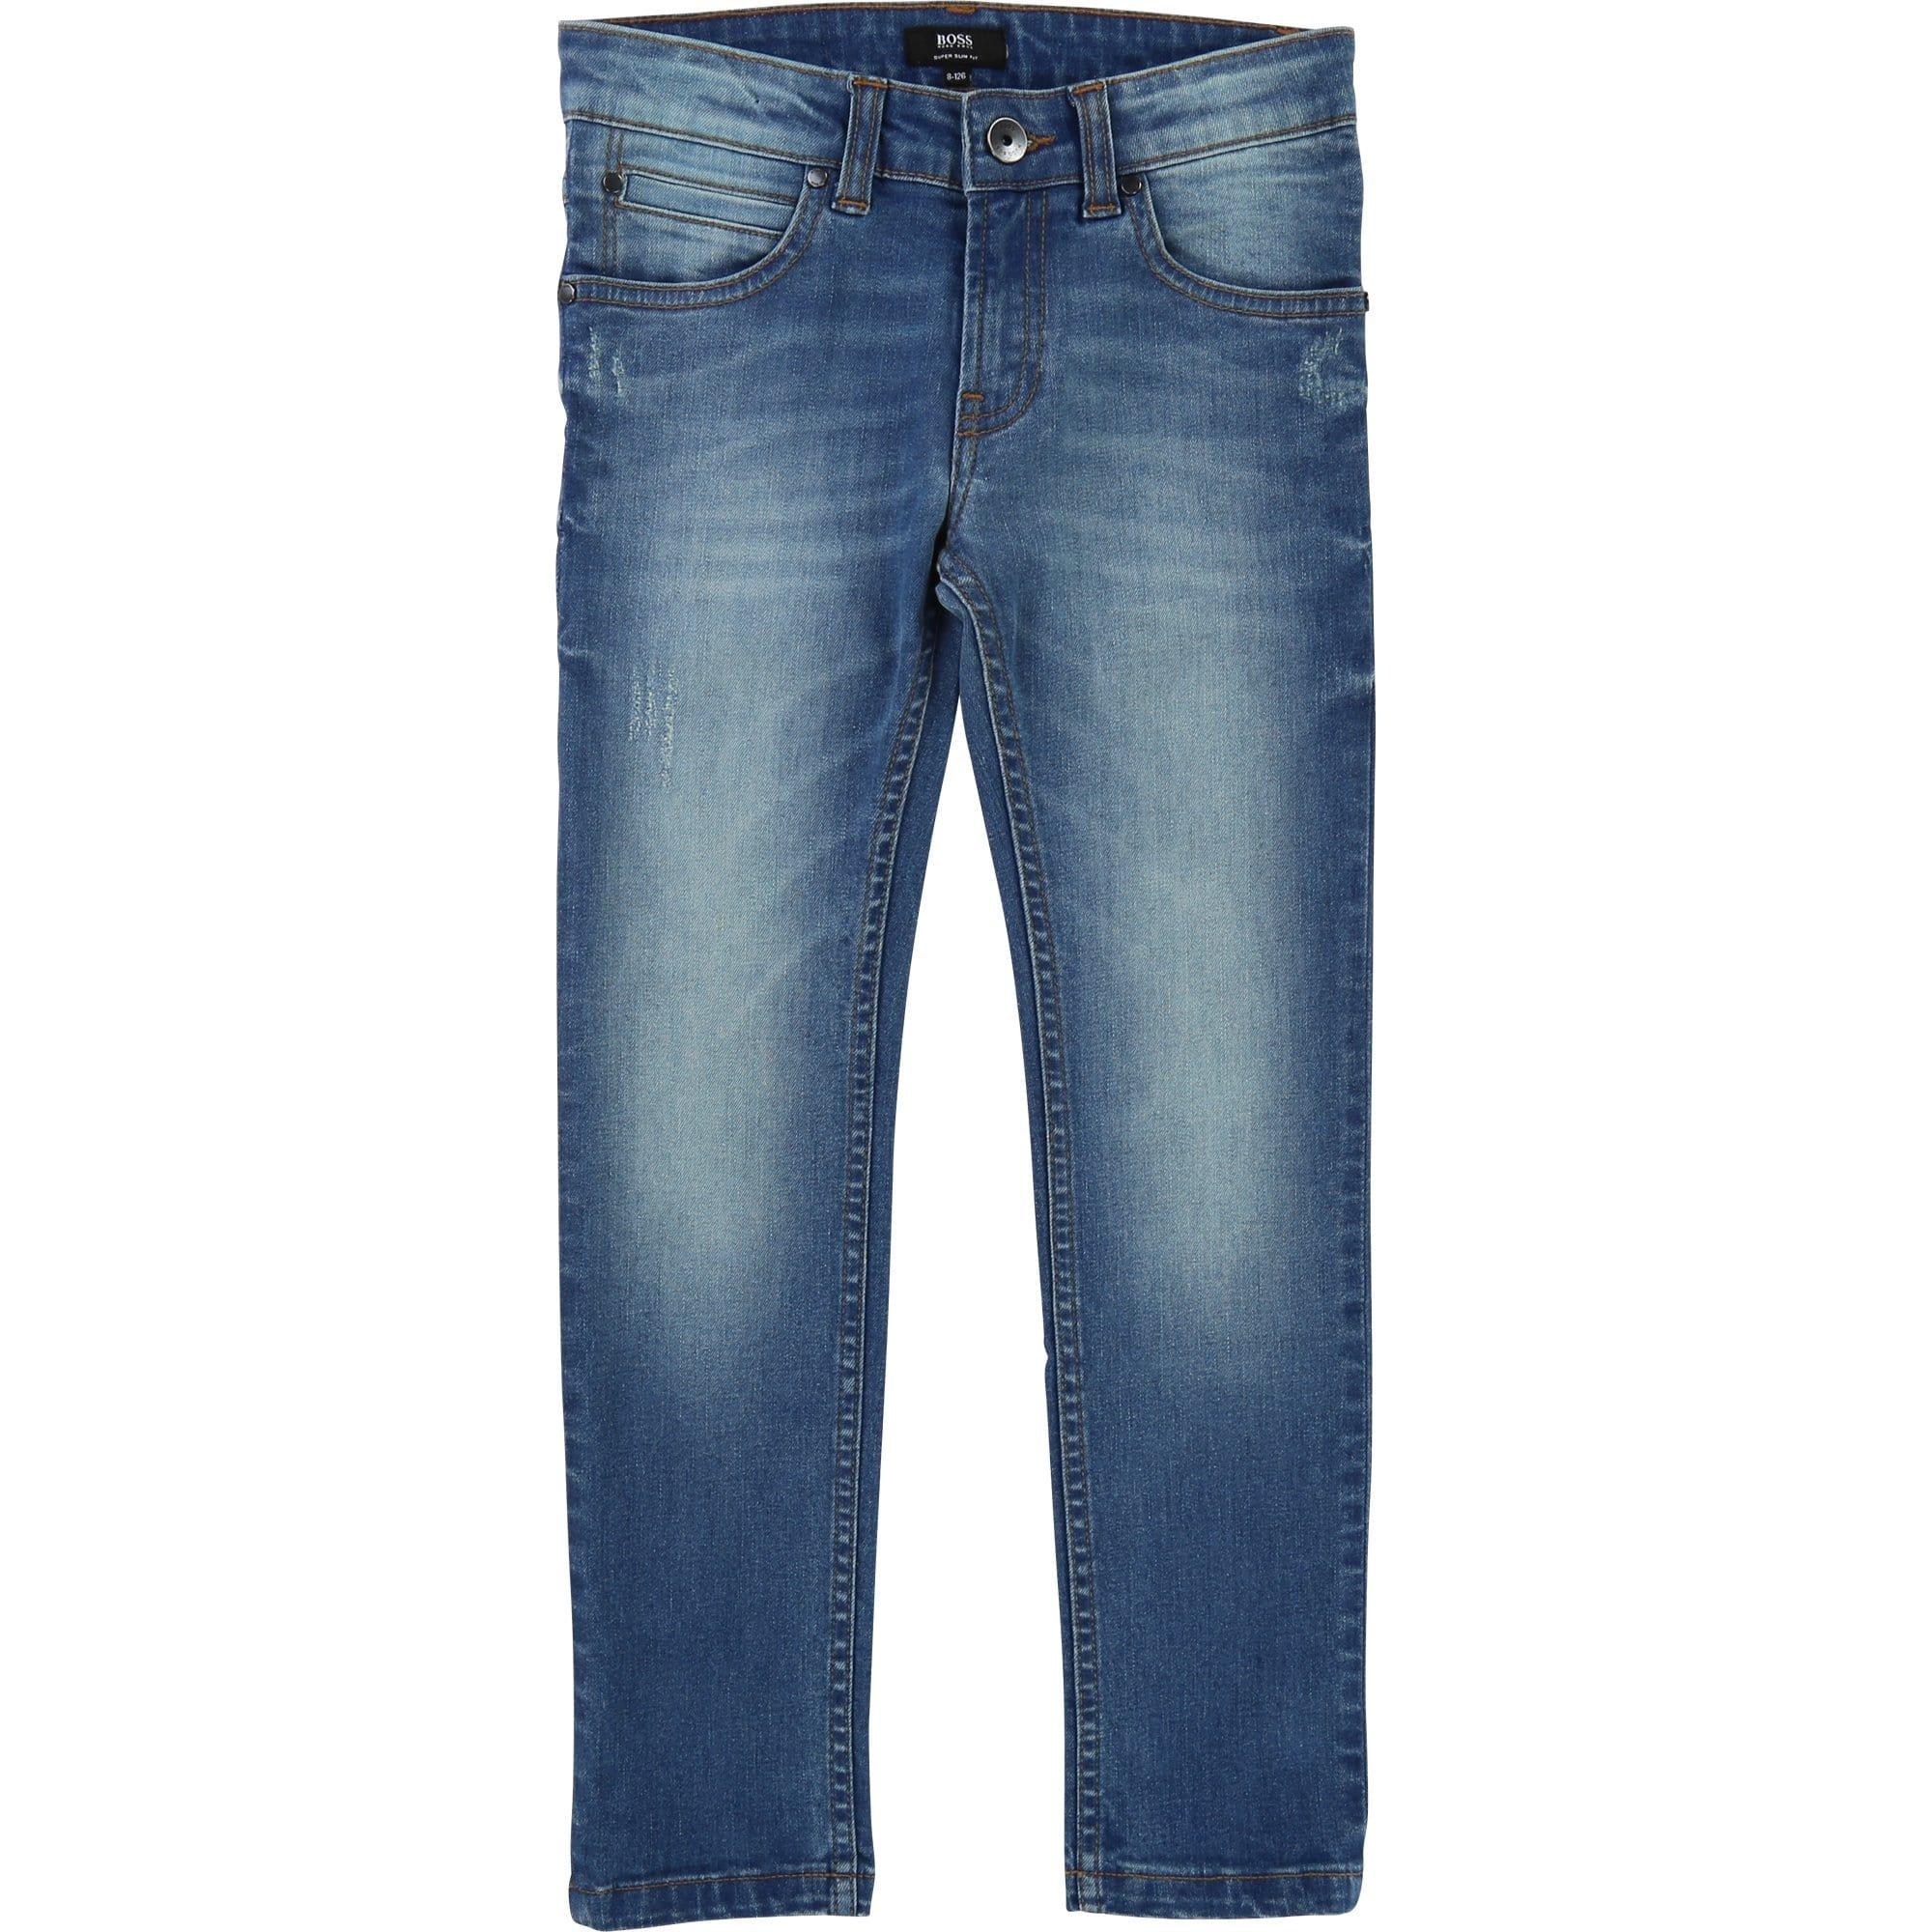 Hugo Boss Double Stone Denim Jeans (4715710972035)